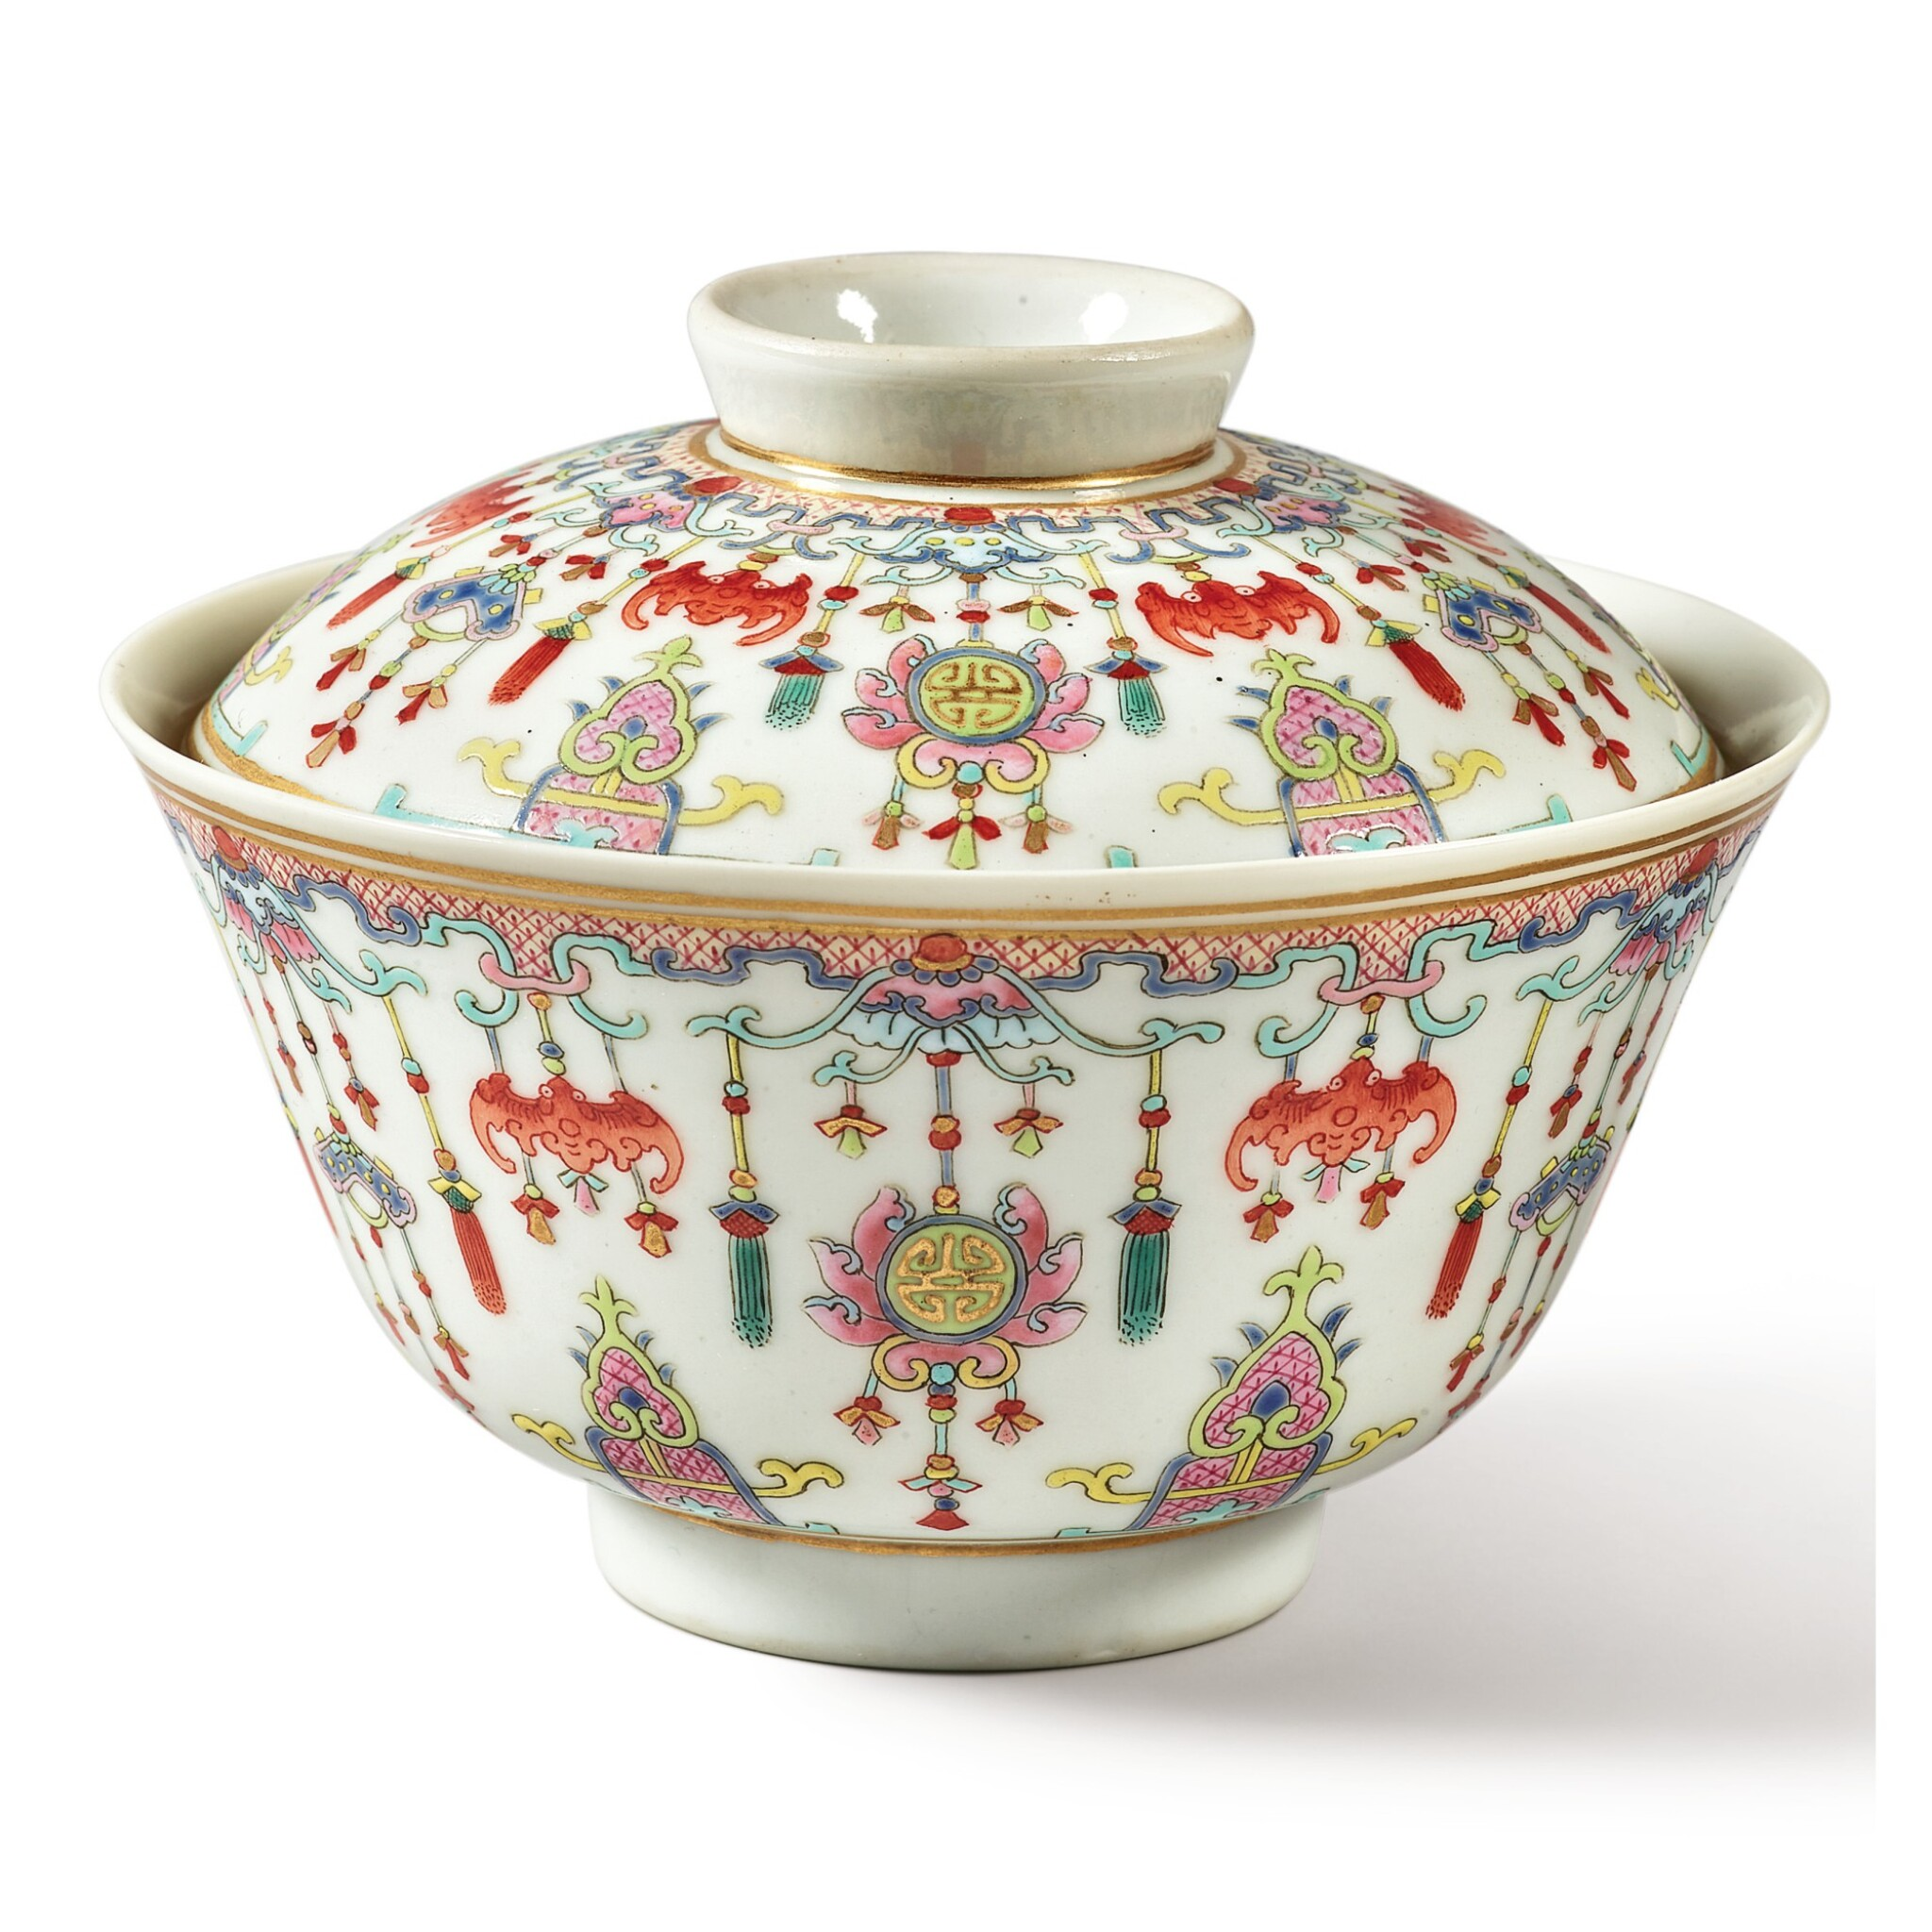 View full screen - View 1 of Lot 175. A famille-rose 'bats and emblems' bowl and cover, Qing dynasty, Daoguang period | 清道光 粉彩博古圖蓋盌  《慎德堂製》款.